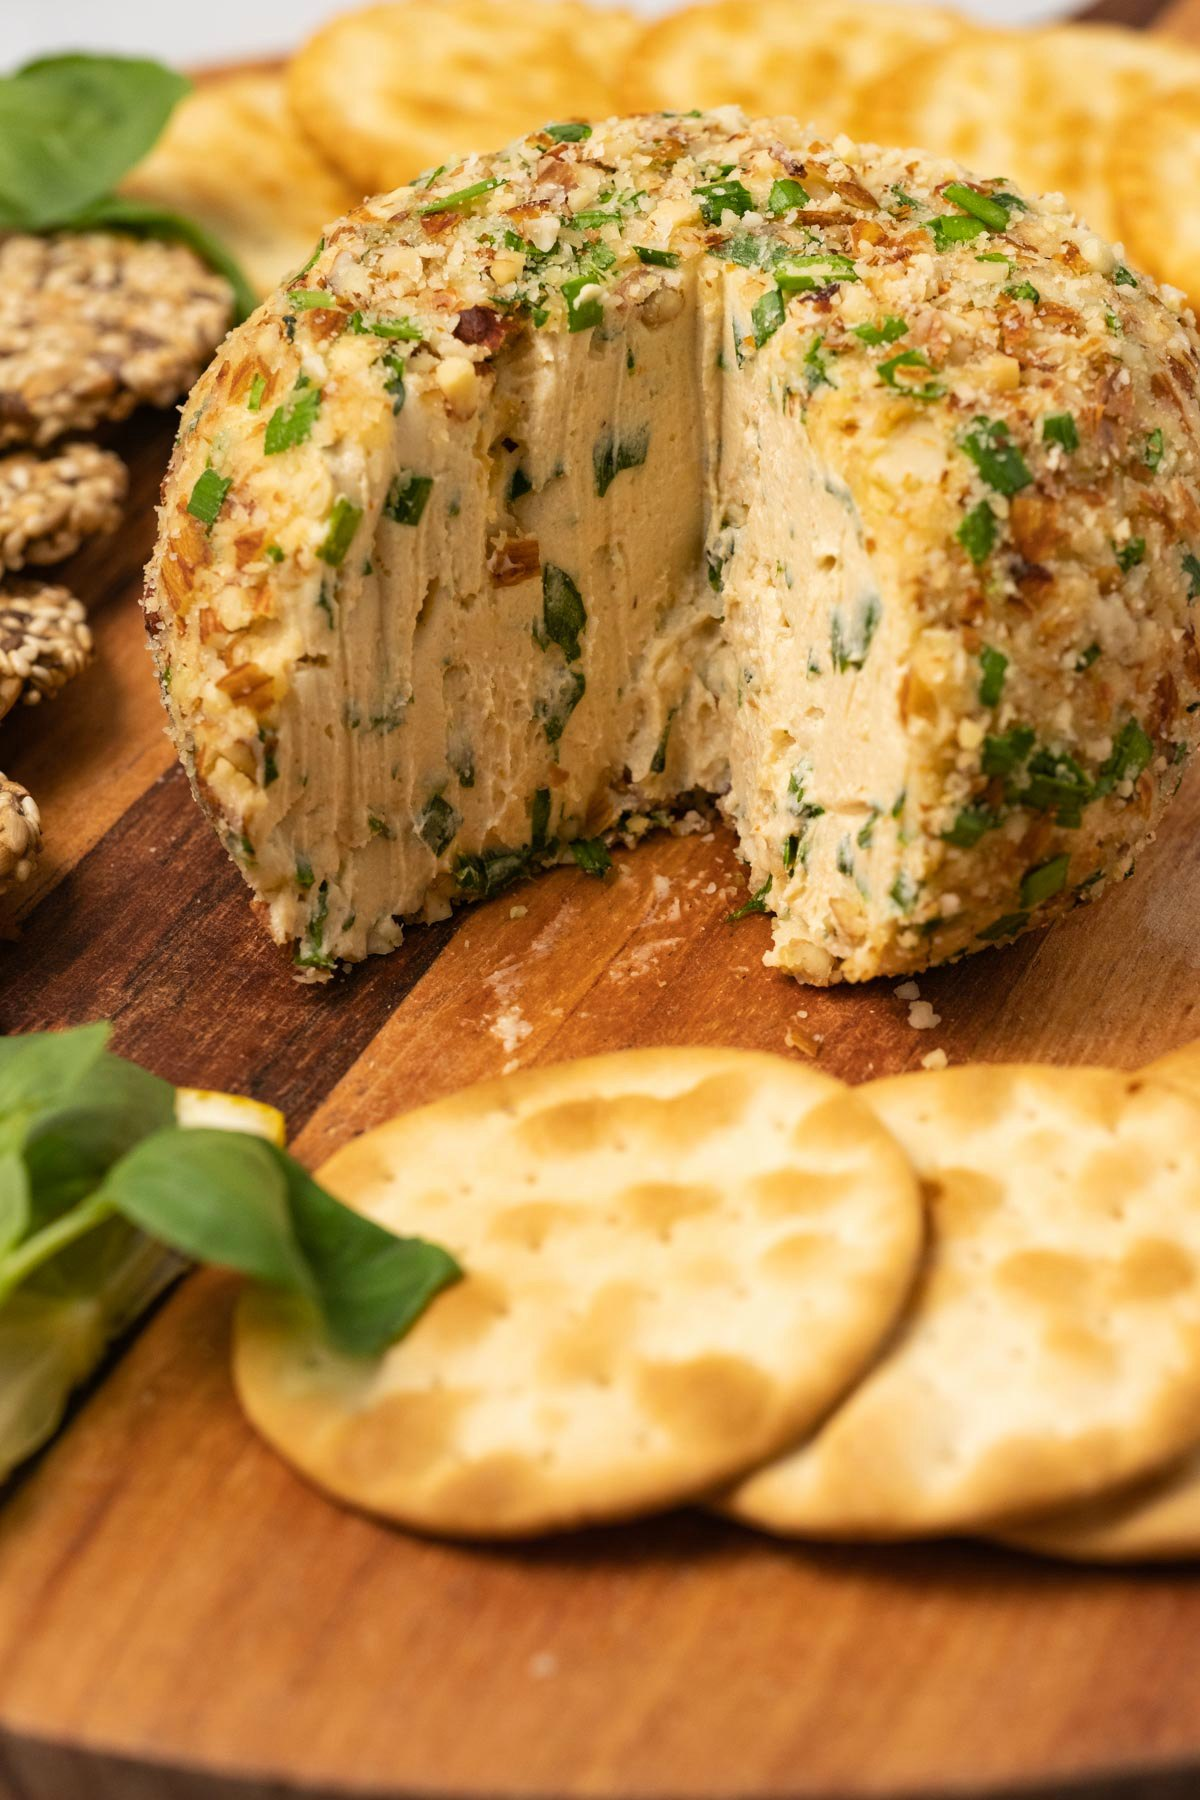 Cheese ball on a wooden board with crackers and fresh basil.